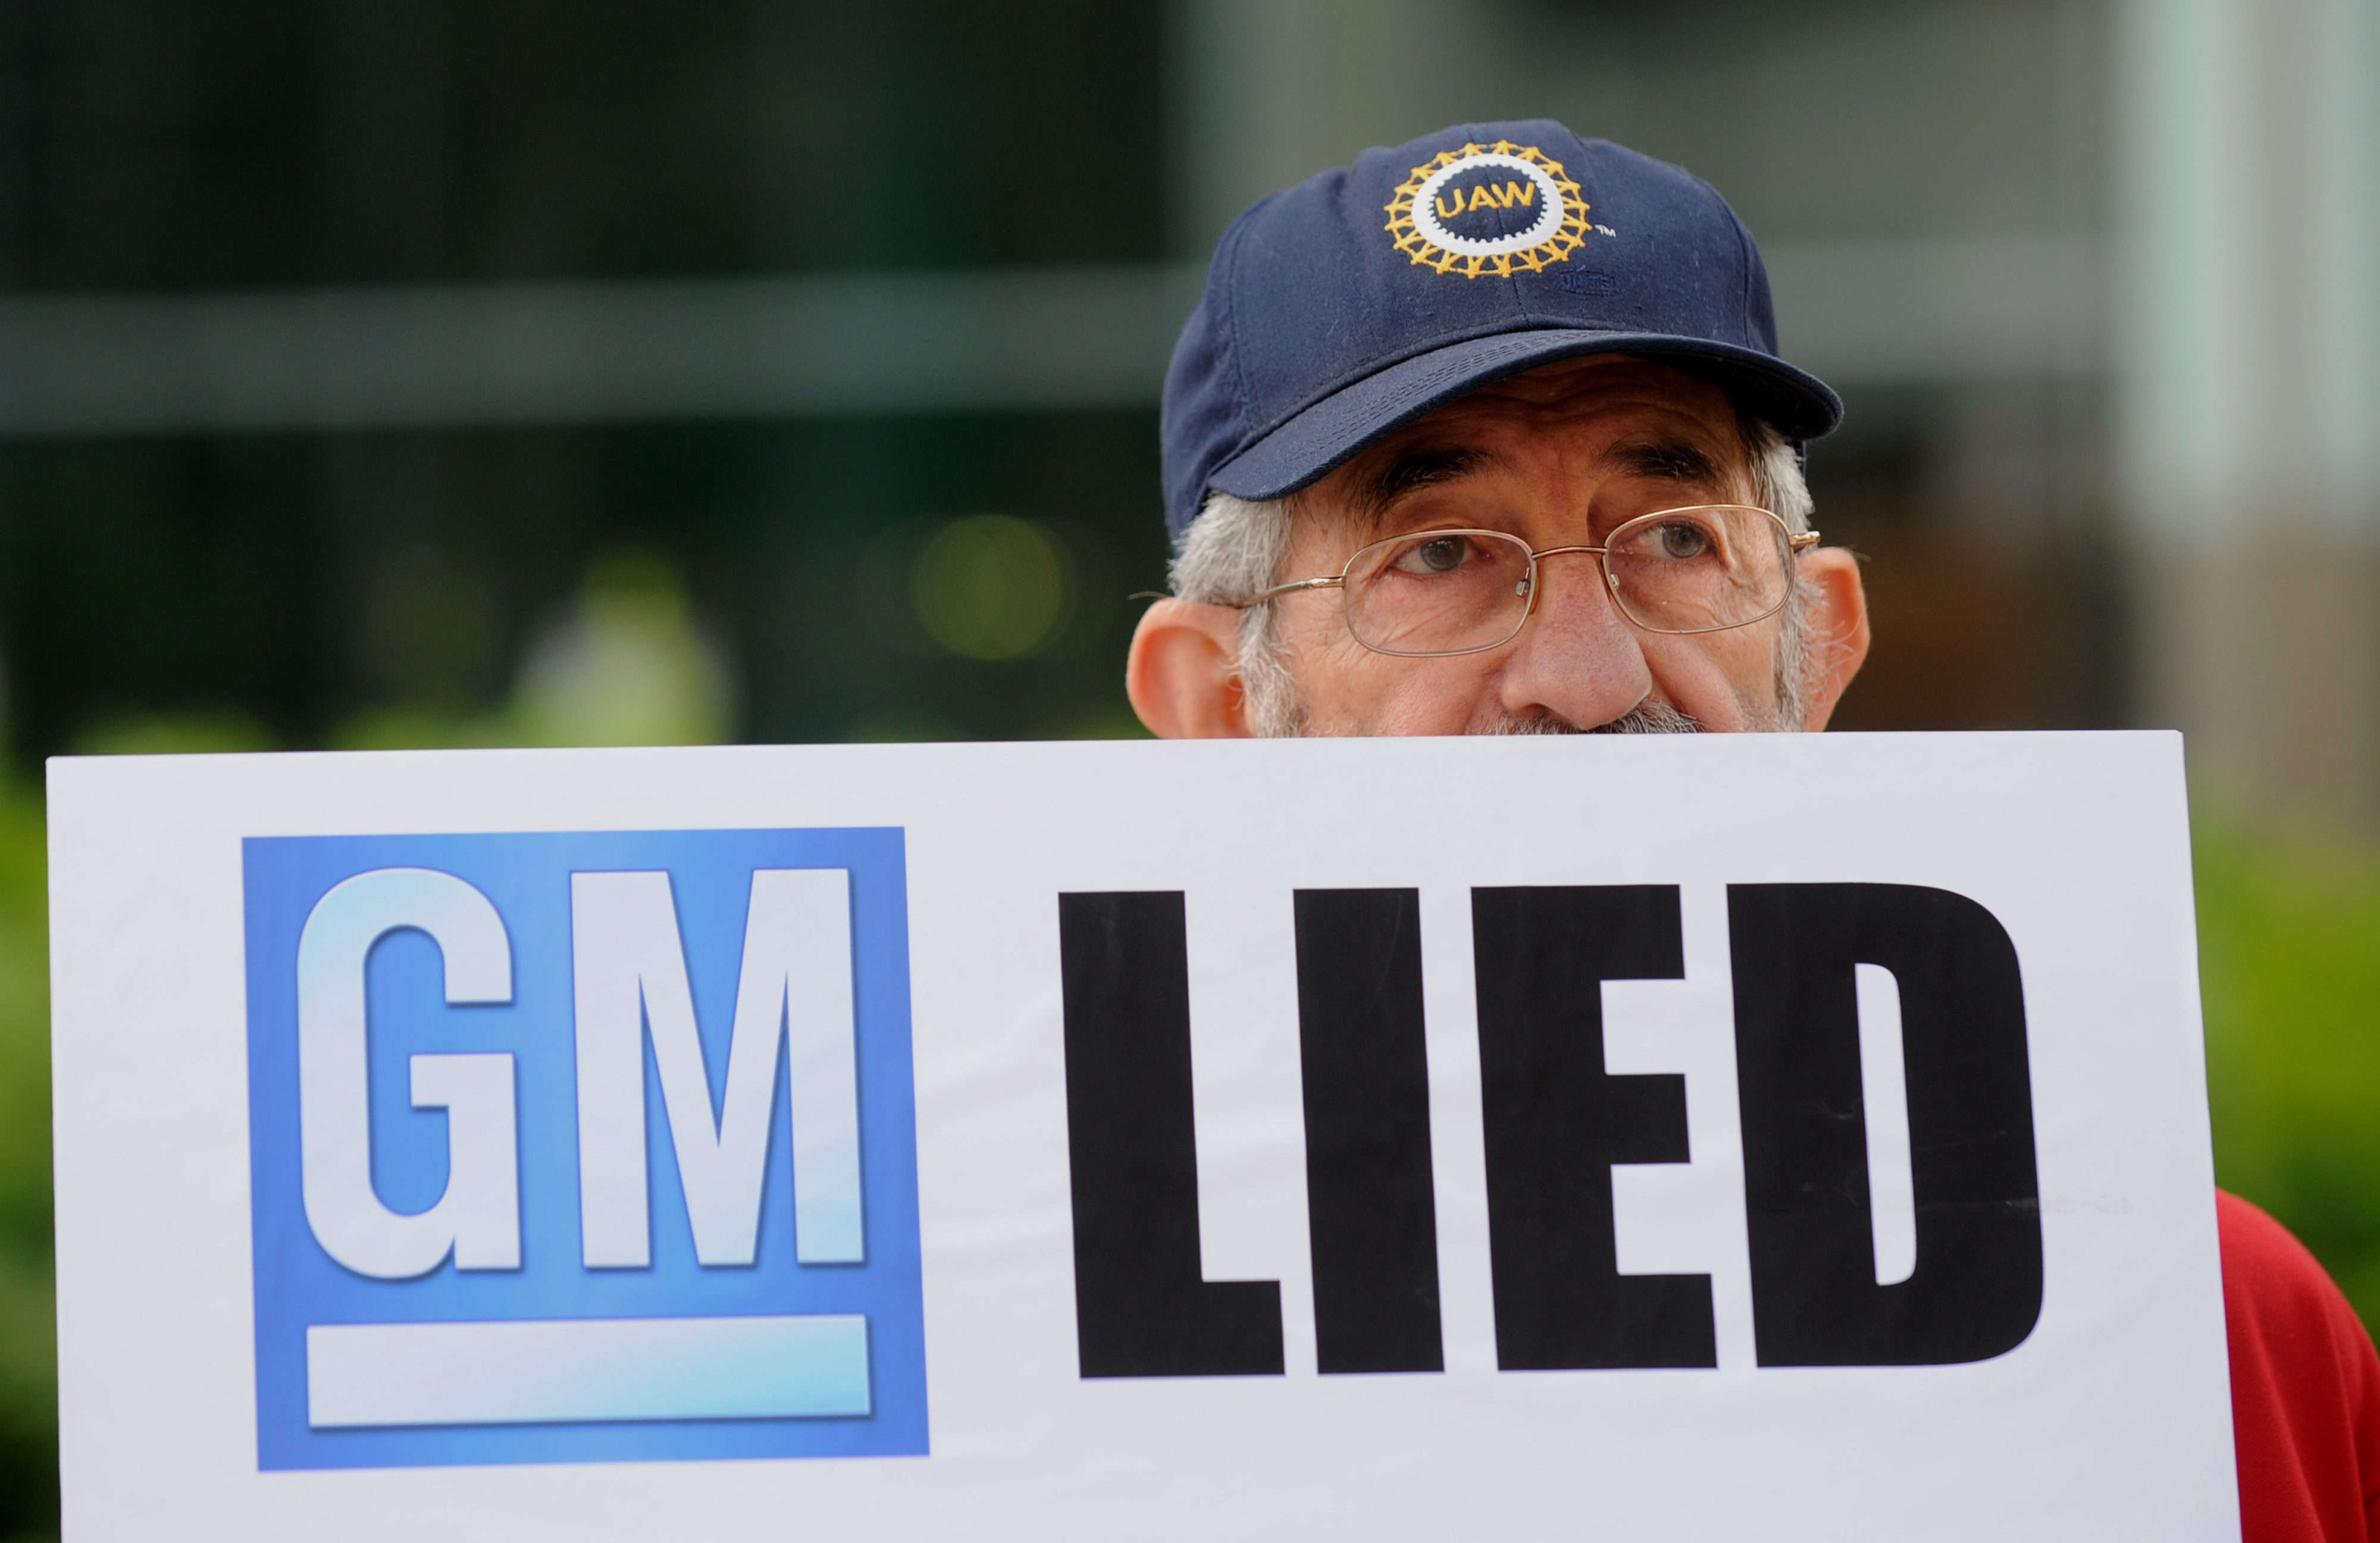 Gm expands recall for cars with ignition problems the for General motors ignition switch case study